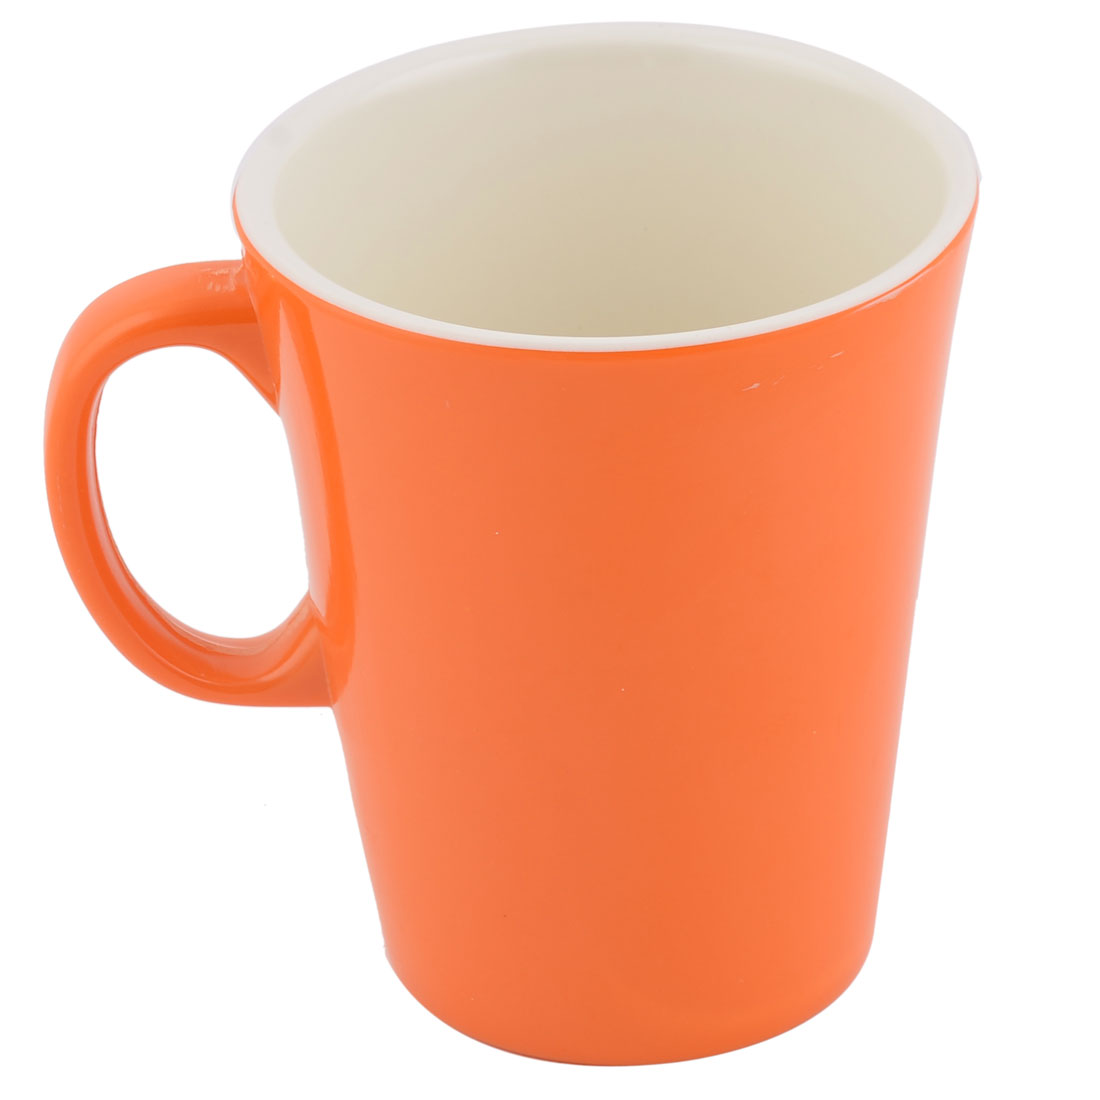 Family Cafe Melamine Cylinder Tea Water Drinking Storage Cup Mug Orange White